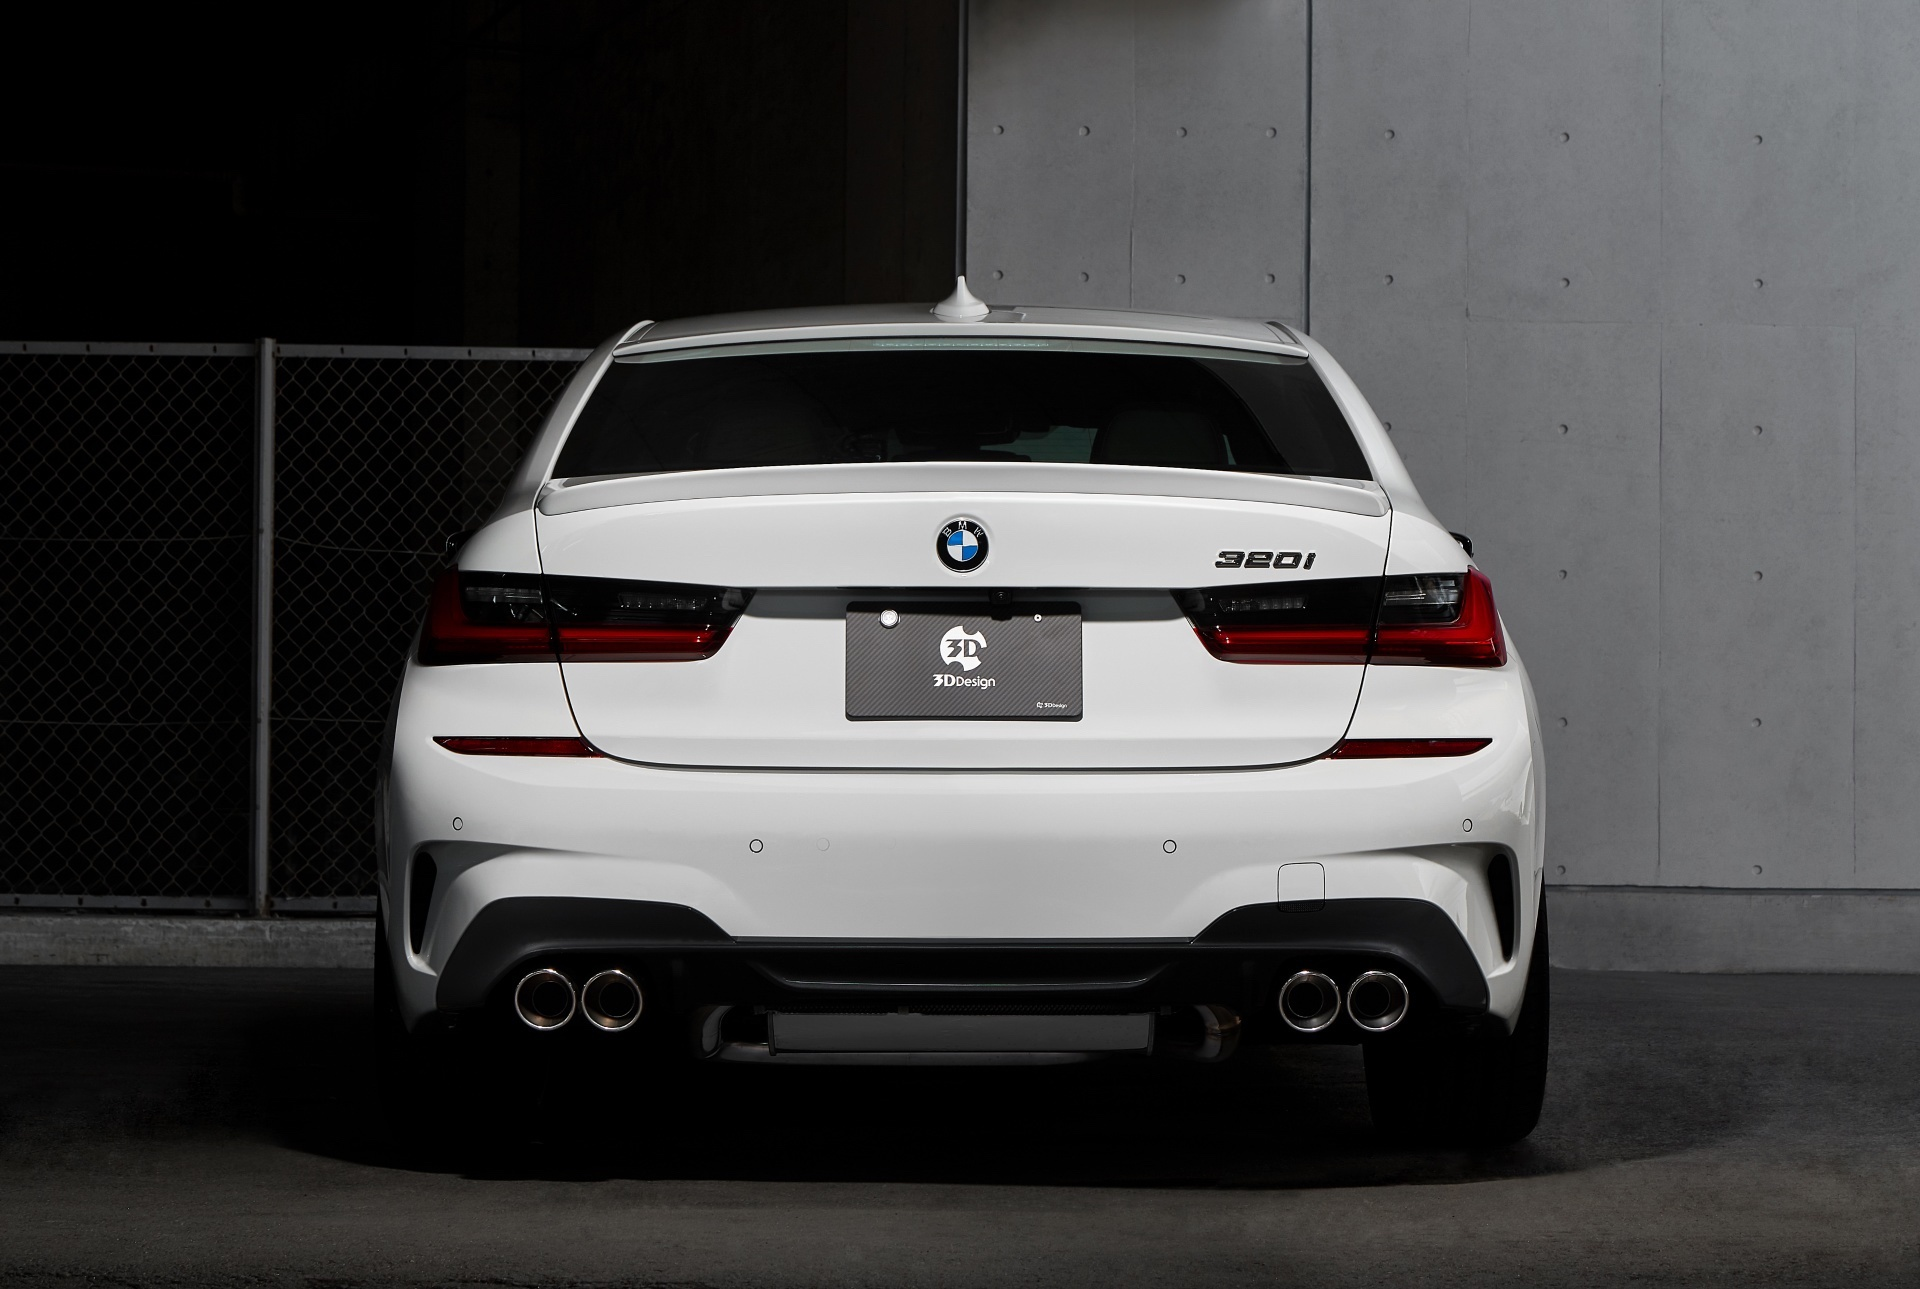 aero parts for the g20 bmw 3 series